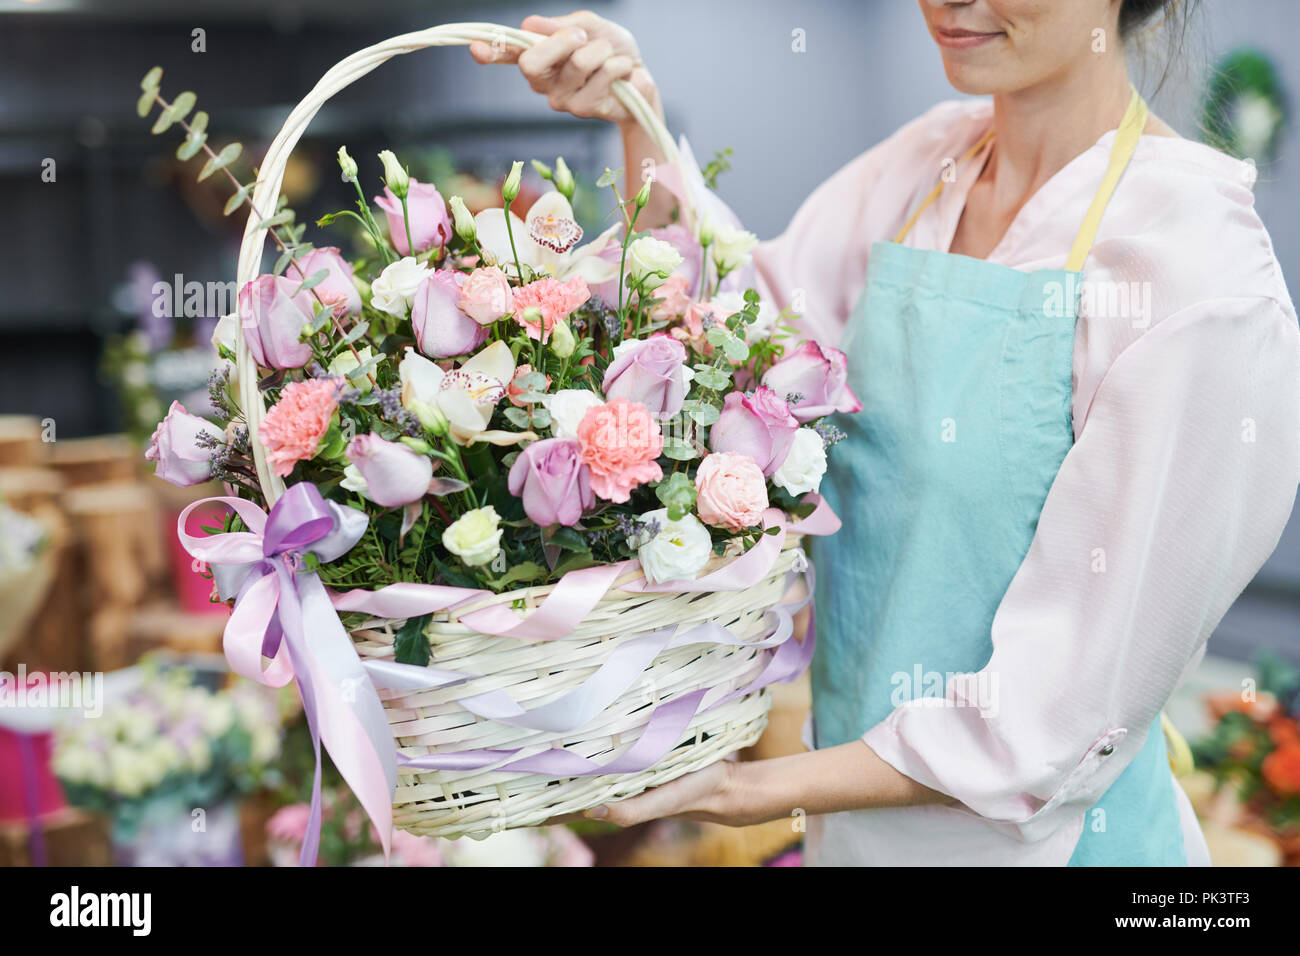 Rose Basket - Stock Image